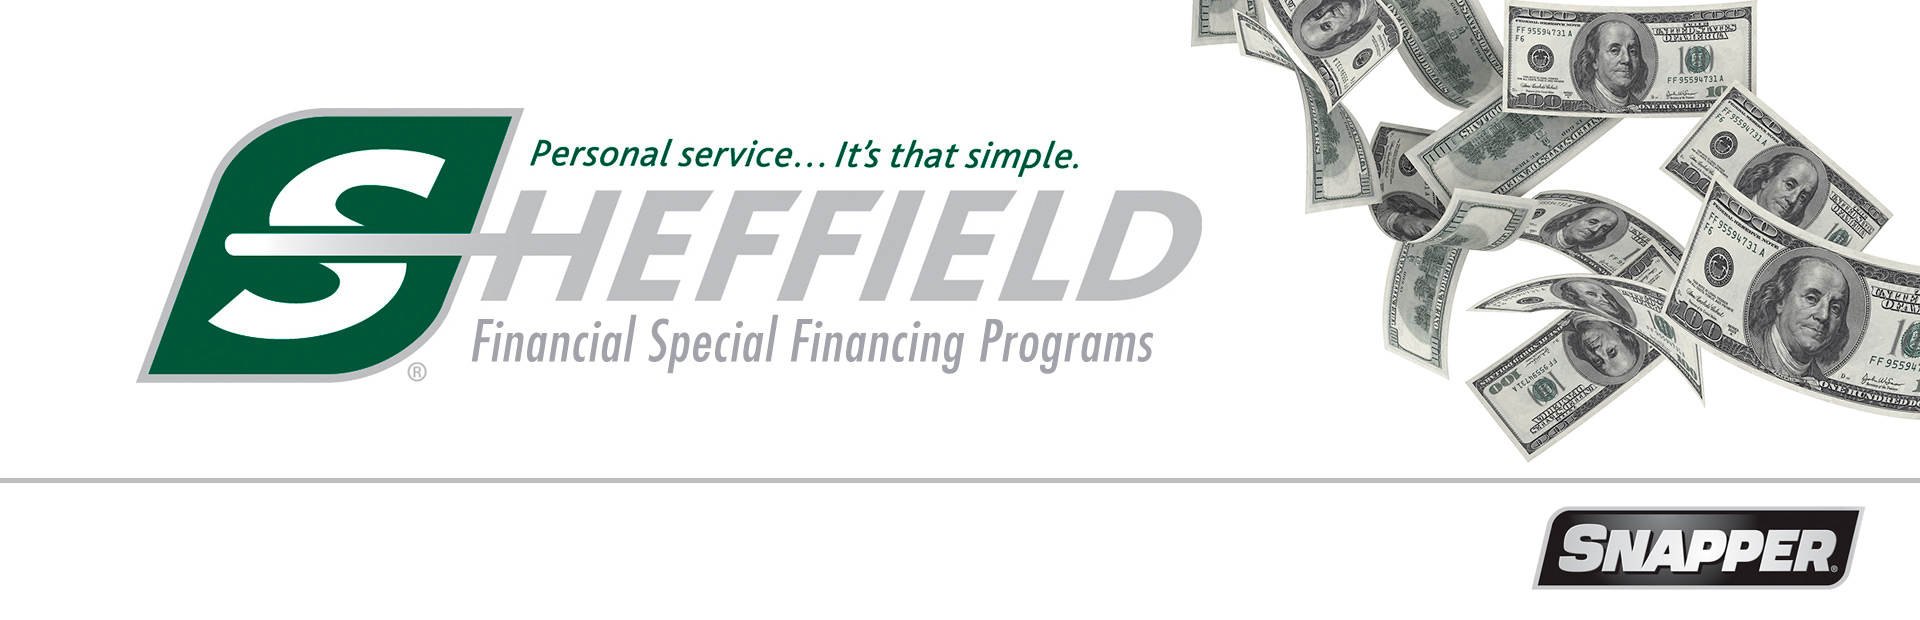 Snapper: Sheffield Financial Special Financing Offers